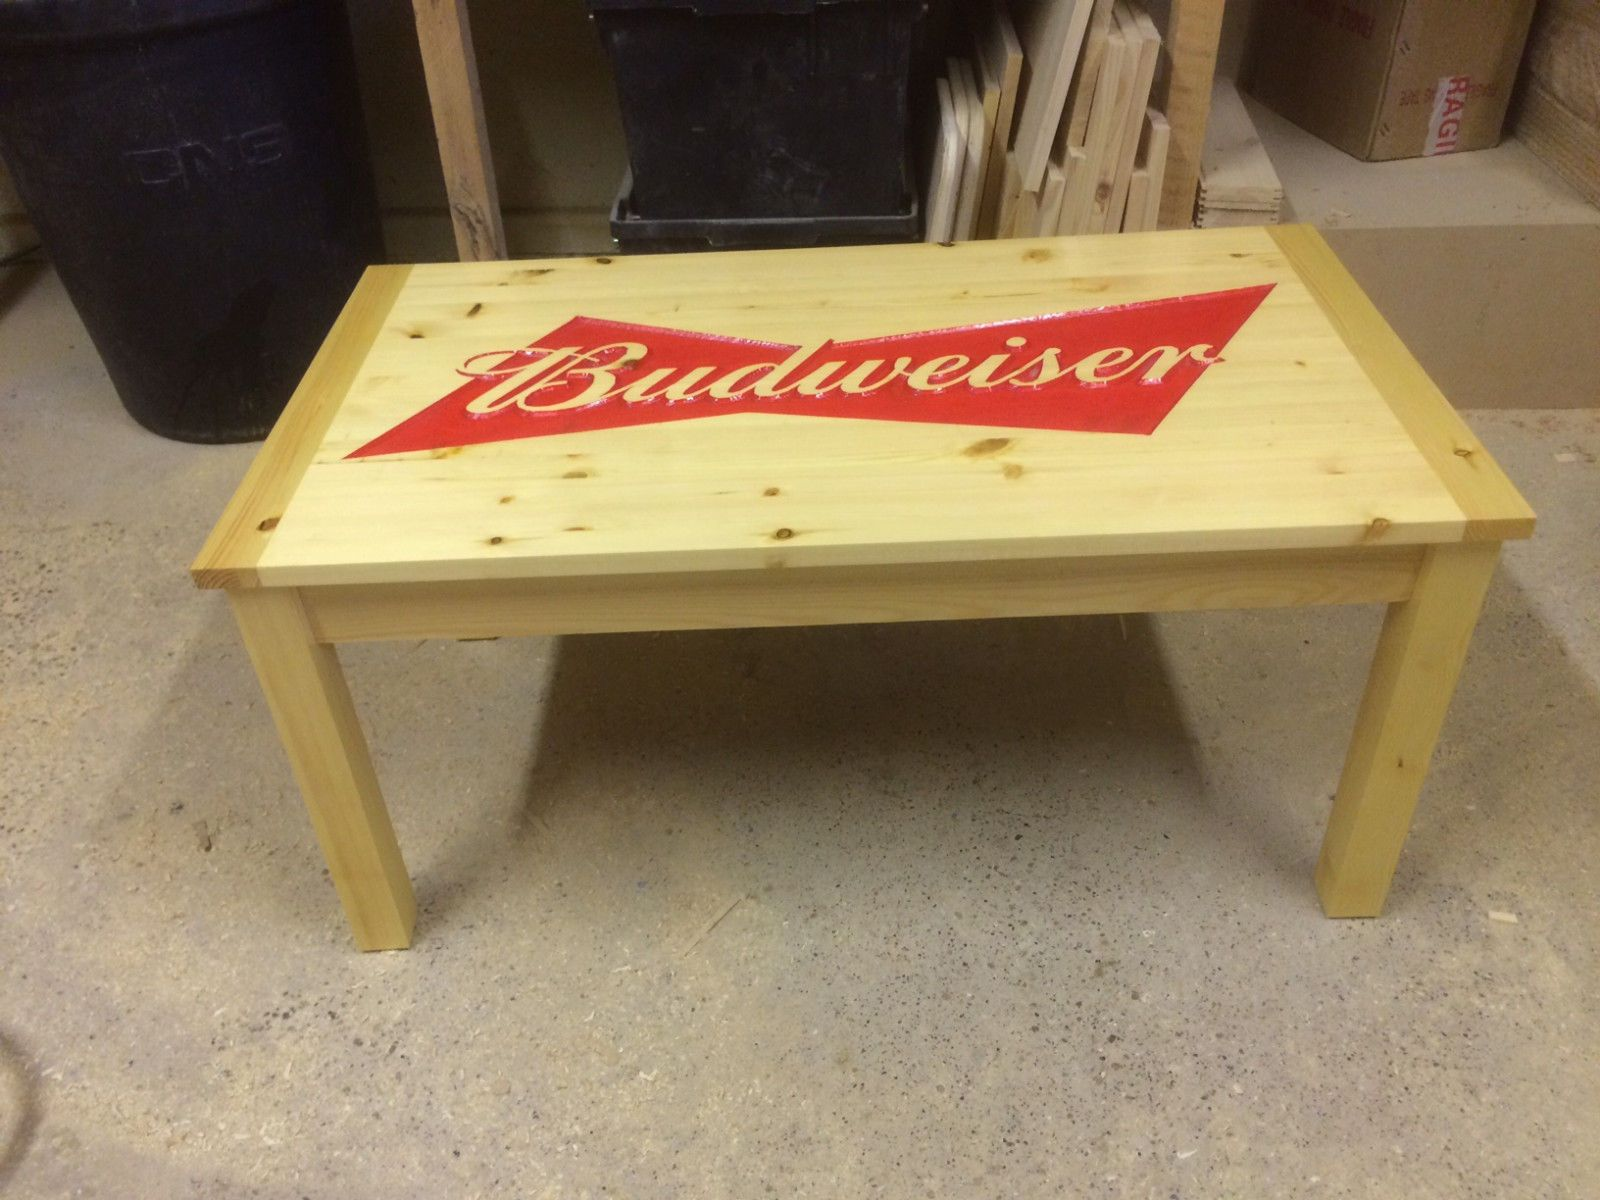 Swell Bespoke Carved Budweiser Coffee Table Man Cave Lady Cave Home Interior And Landscaping Oversignezvosmurscom